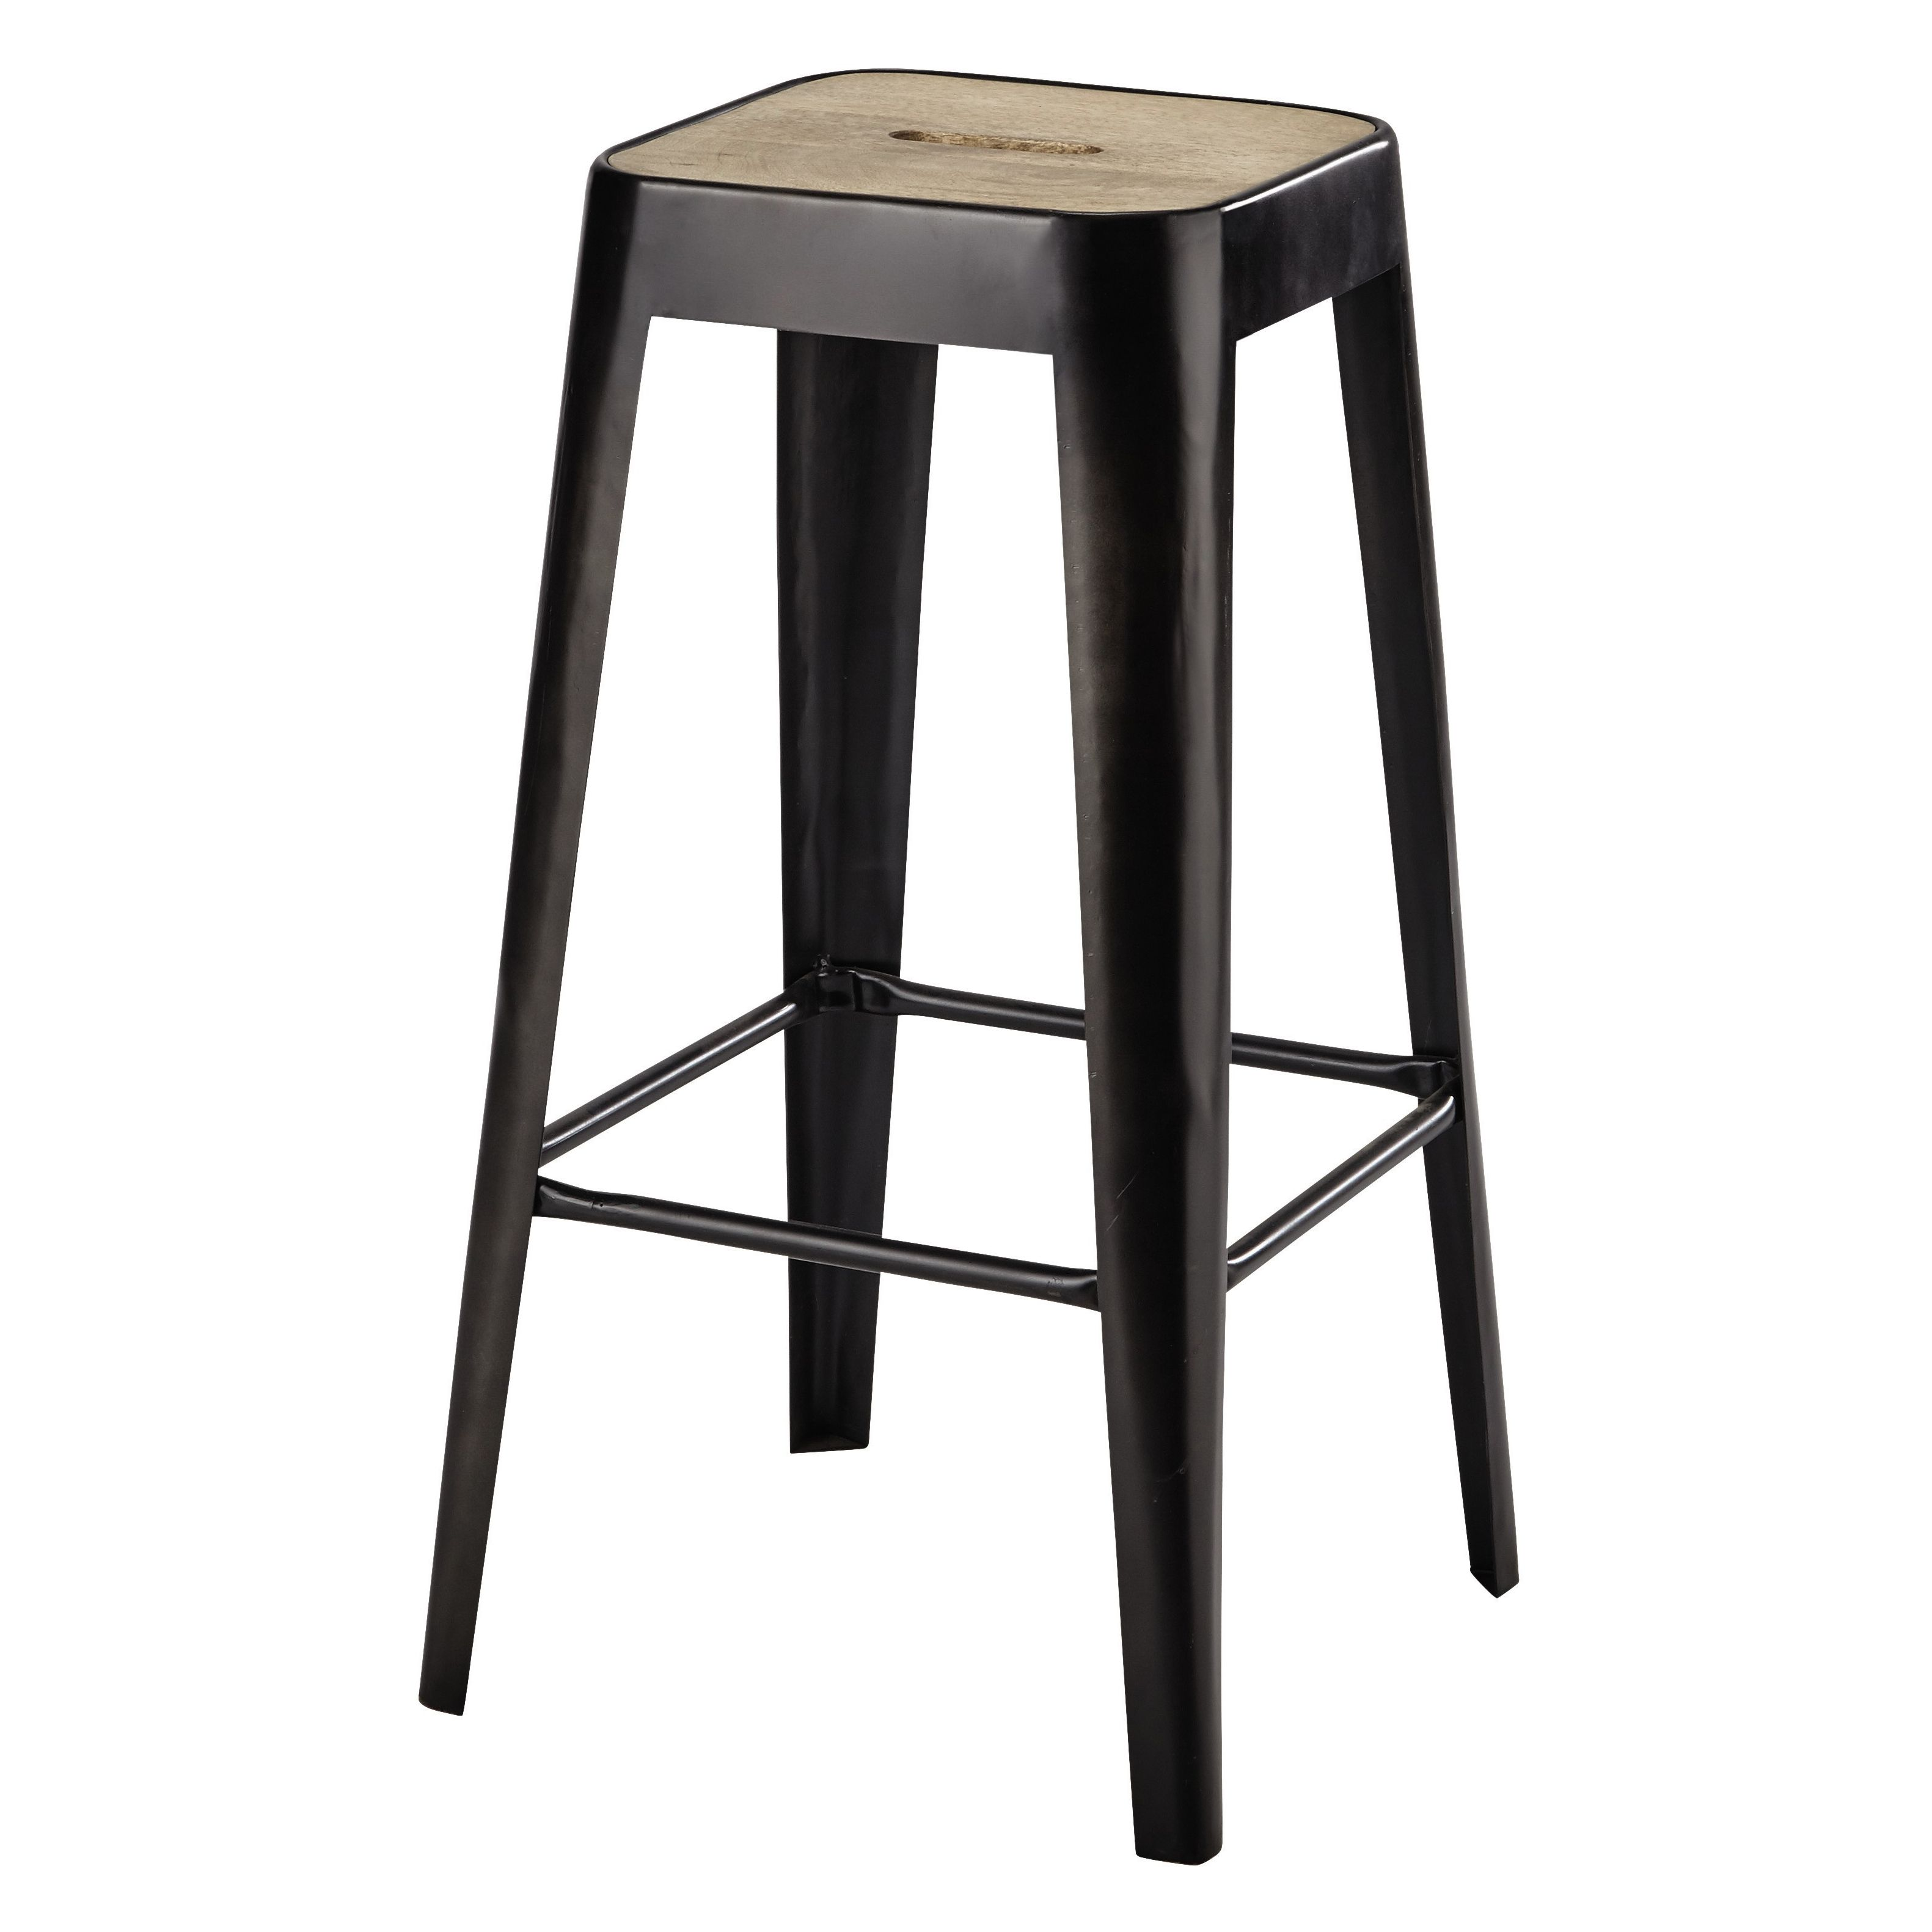 tabouret de bar en manguier et m tal manufacture maisons du monde maison du monde ambiances. Black Bedroom Furniture Sets. Home Design Ideas